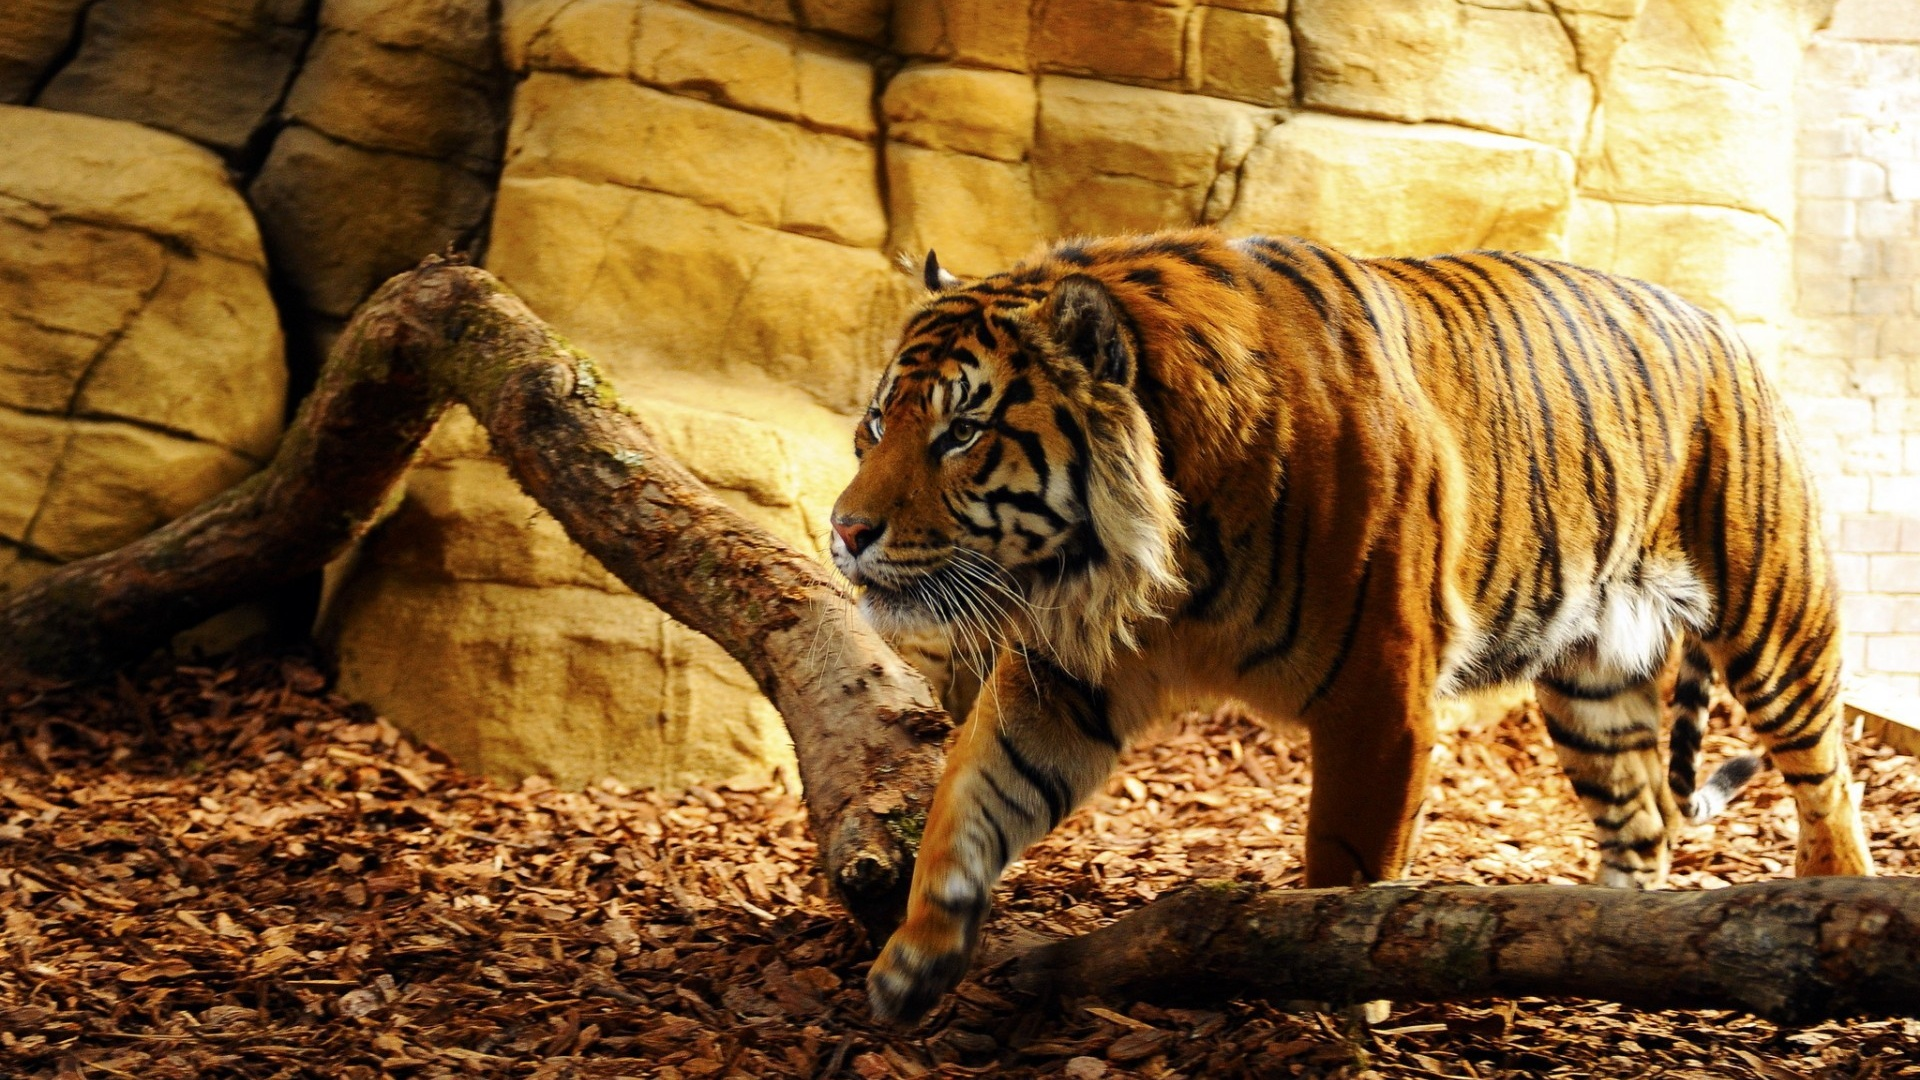 Cool Wallpaper Mac Tiger - tiger-in-captivity_wallpapers_36692_1920x1080  Image_92364.jpg